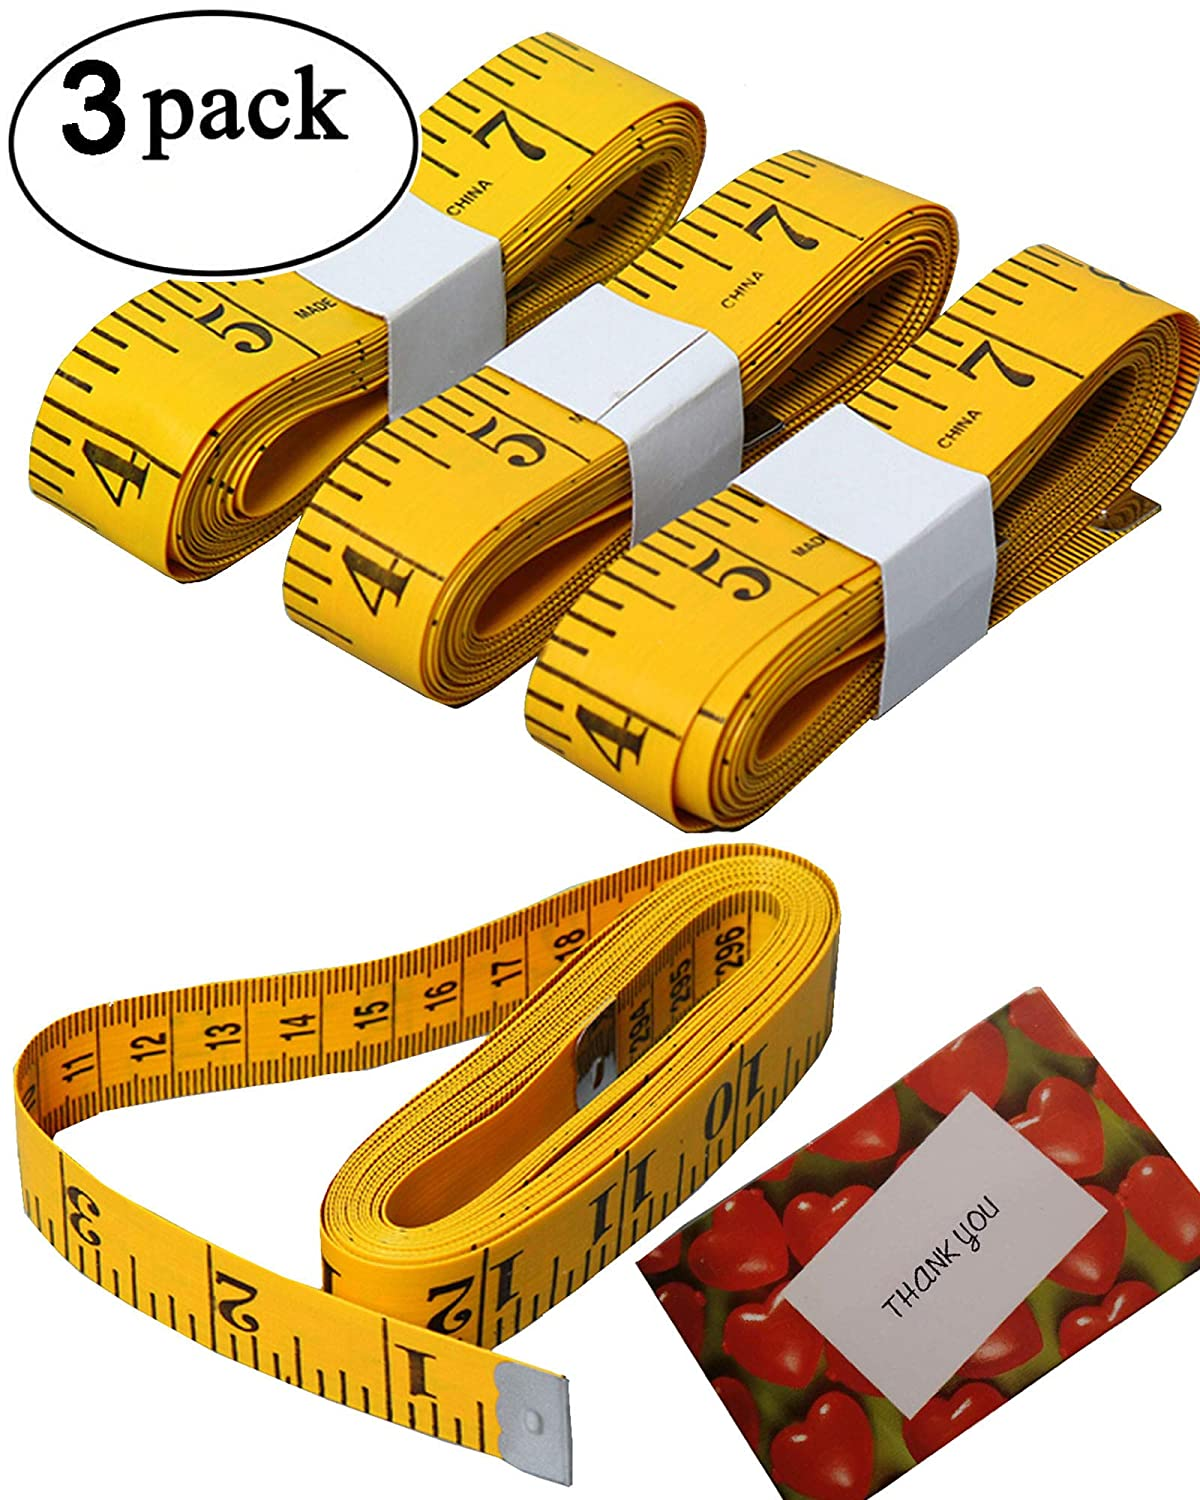 BSLINO bb-134-ruler 3 Piece Double-Scale Soft Tape Measuring Weight Loss Medical Body Measurement Sewing Tailor Cloth Dressmaker Flexible Ruler, Heavy Duty Tape 2